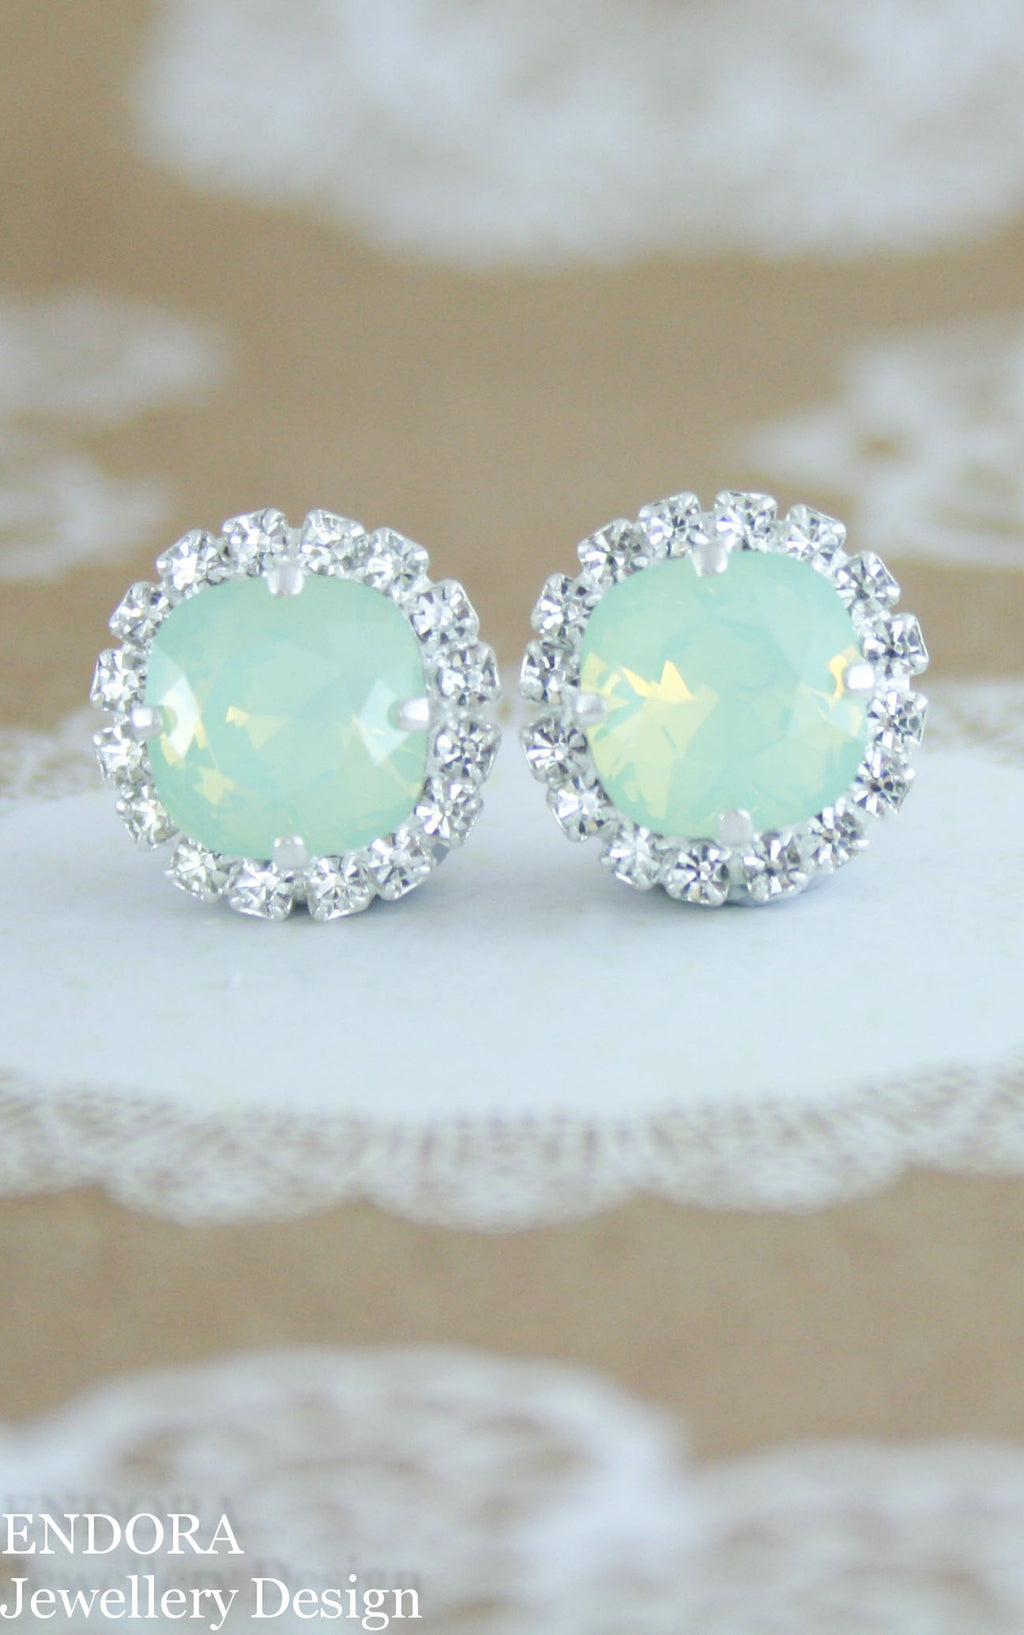 Swarovski chrysolite opal earrings